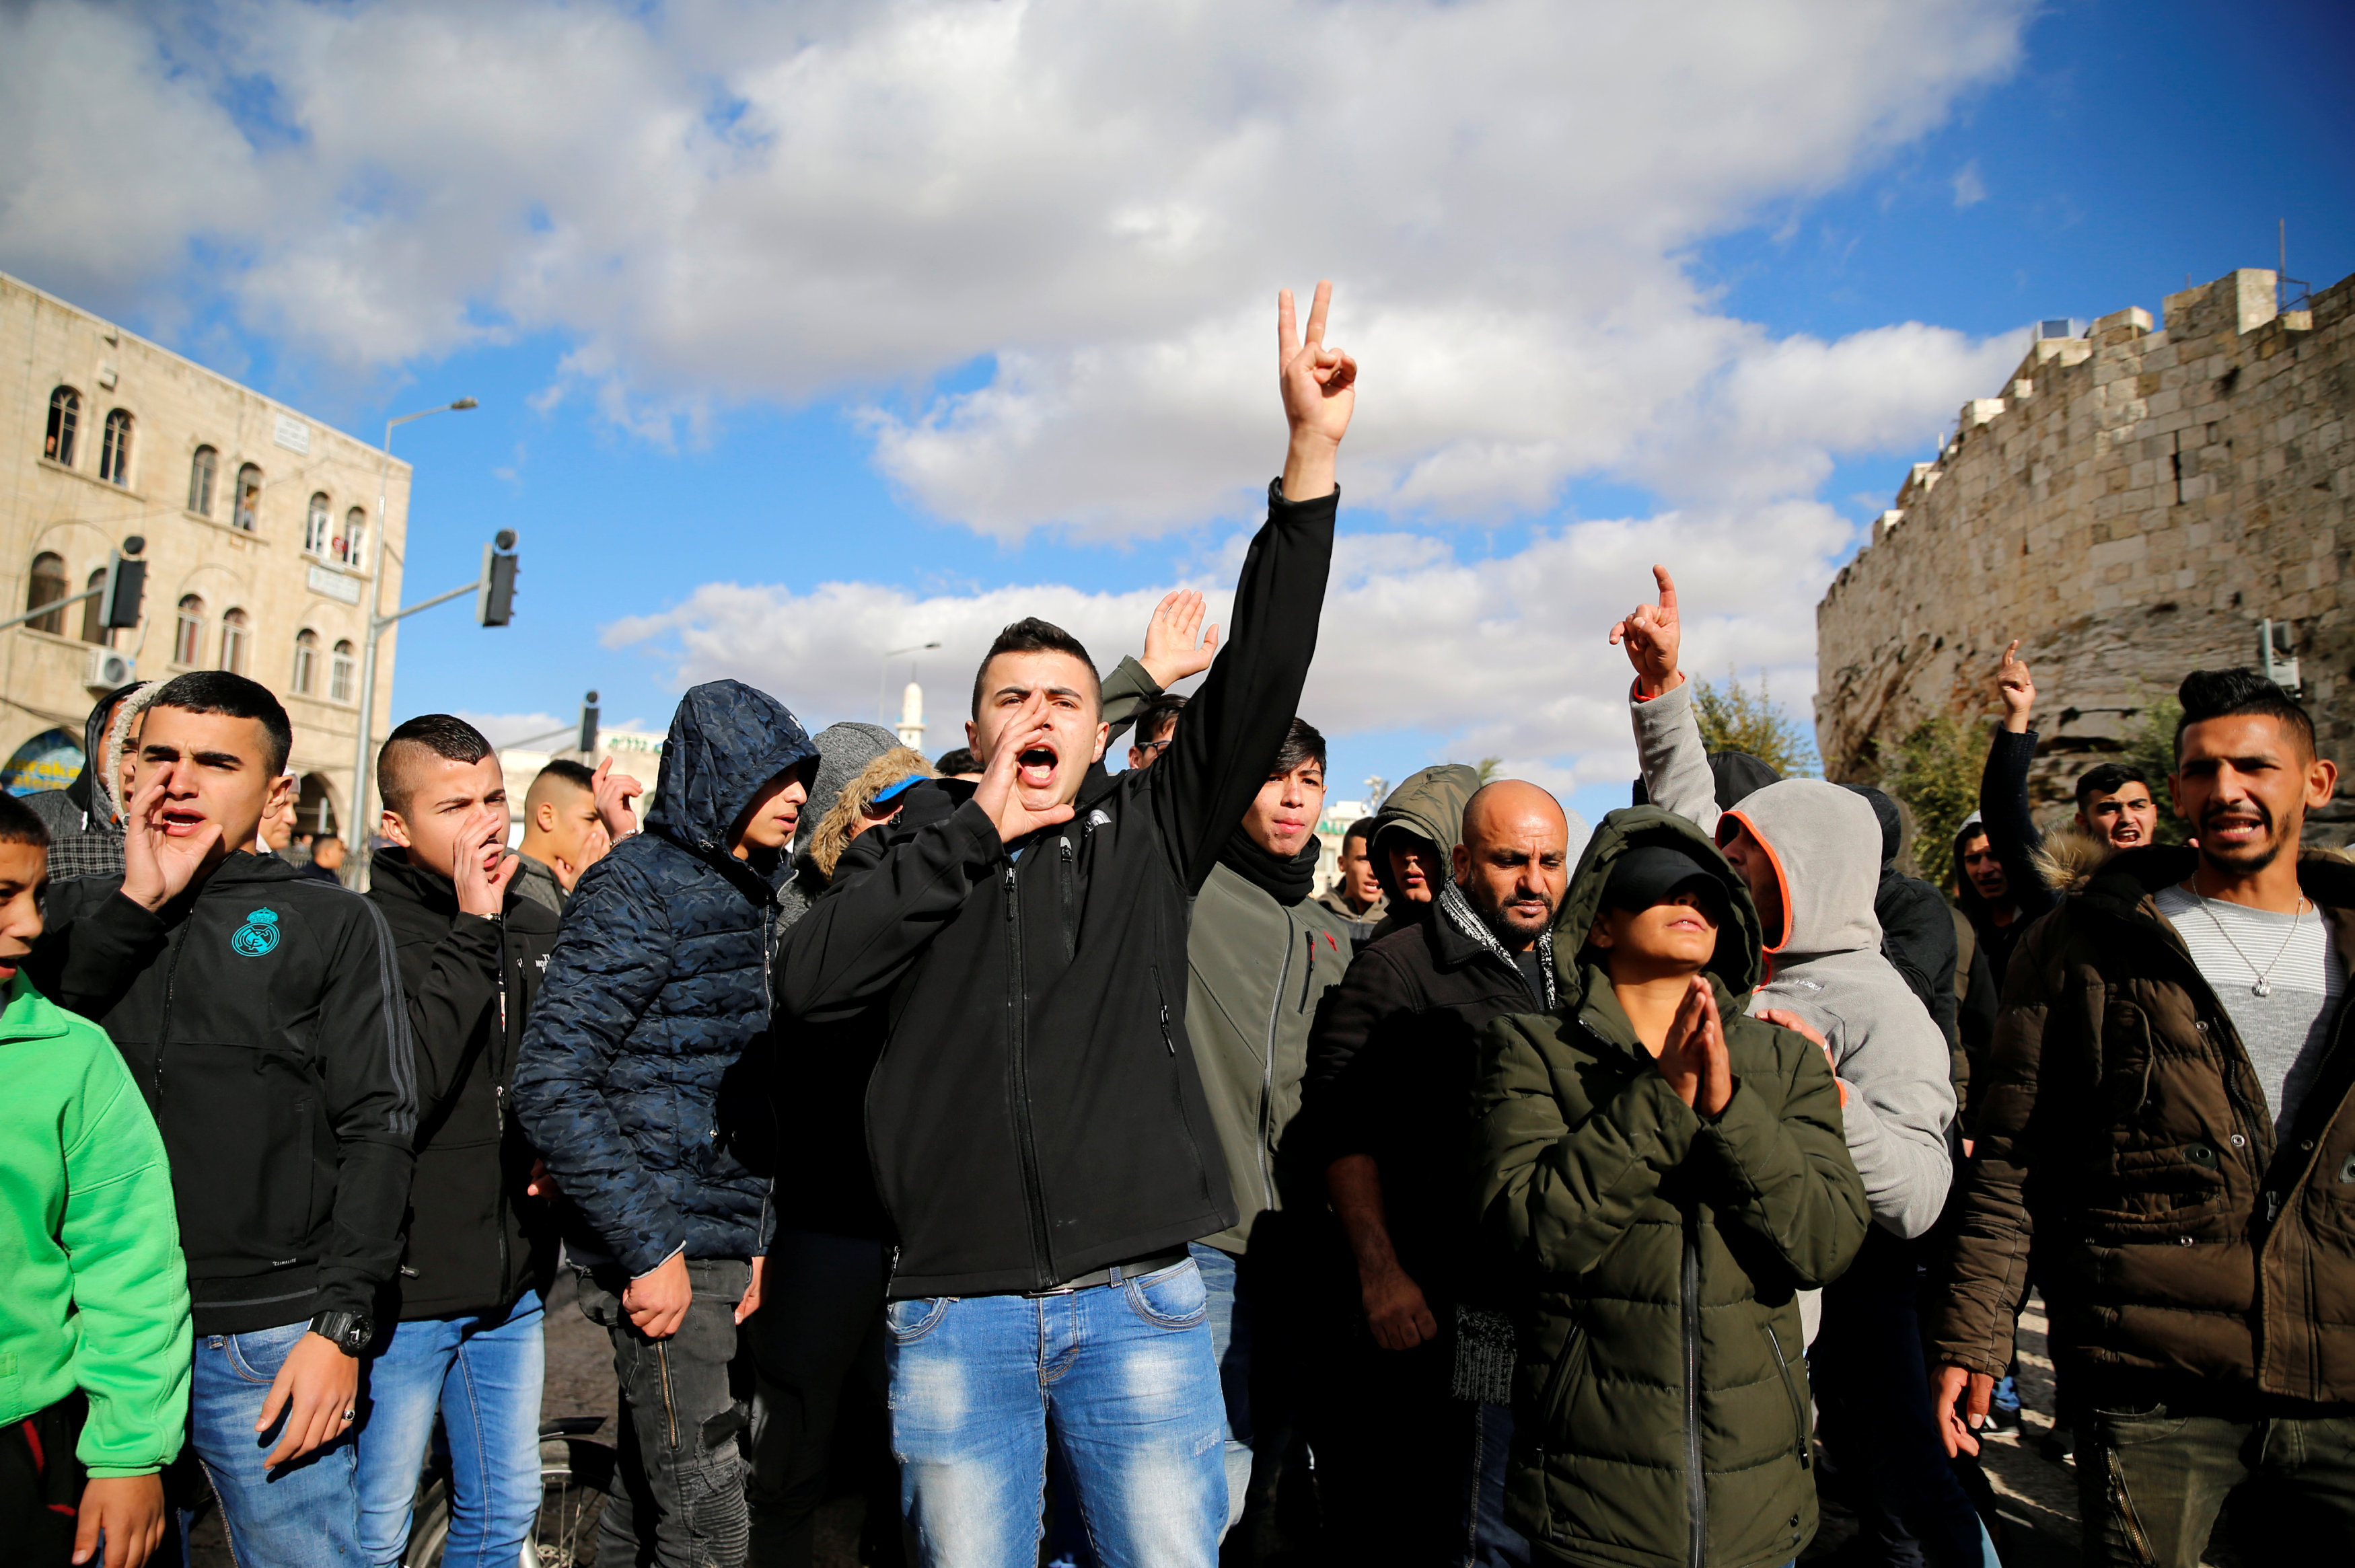 Palestinians shout slogans during a protest following U.S. President Donald Trump's announcement that he has recognized Jerusalem as Israel's capital, near Damascus Gate in Jerusalem's Old City December 7, 2017